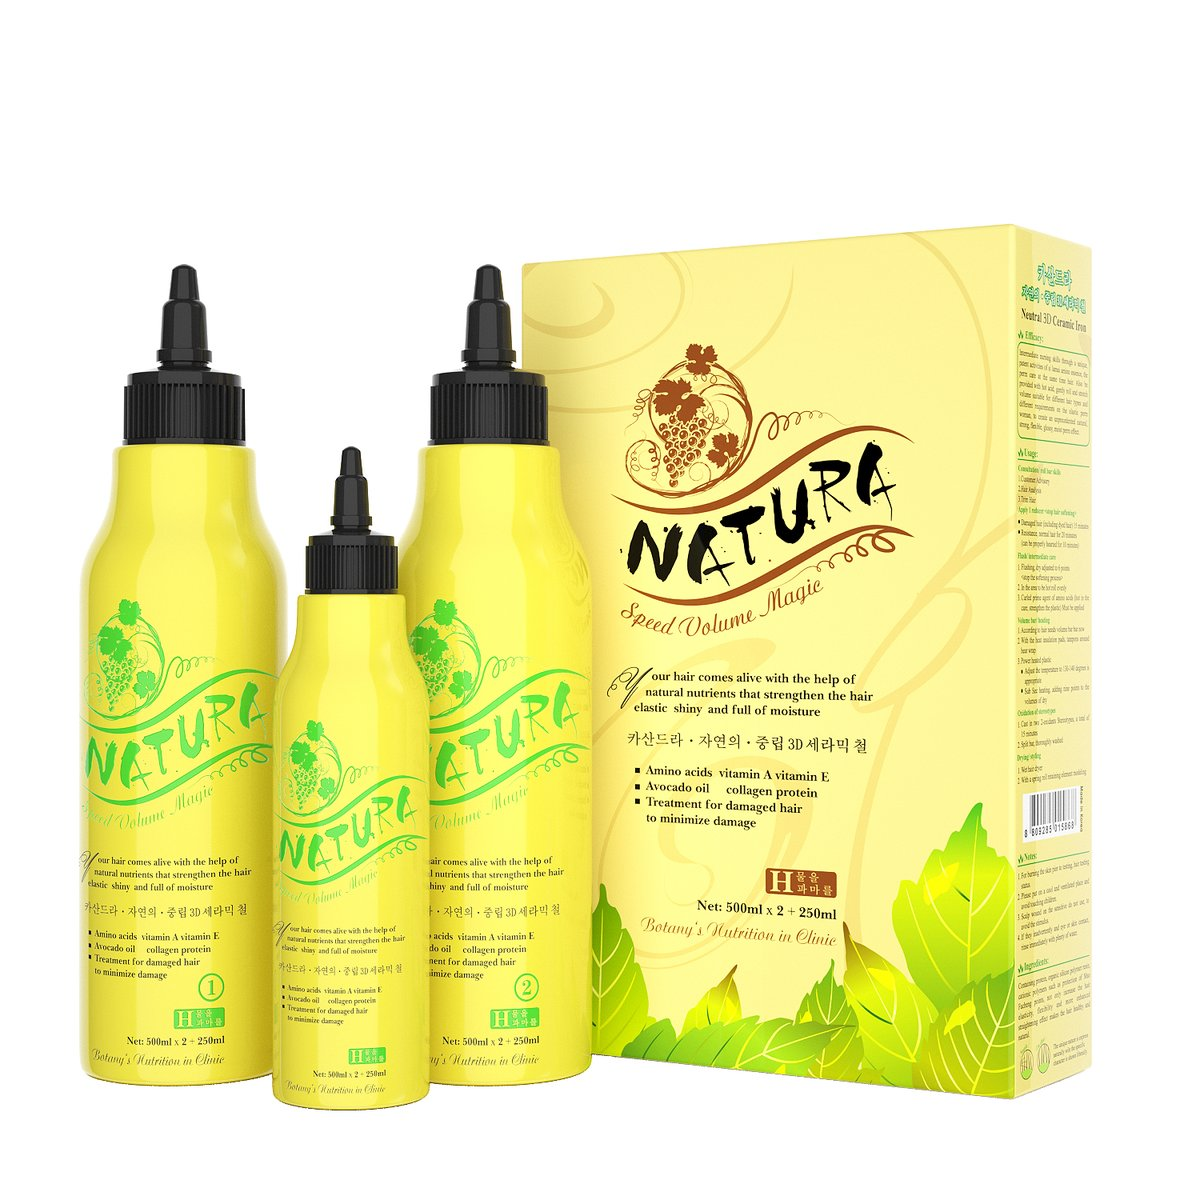 Professional OEM ODM private label naturally curly hair perm for damaged hair Achieve 15 minutes of fast curls. You can also easily perm your hair at home. What are you waiting for? #hair #curly #damaged #naturally #OEM #ODM #Label #label #perm #perming #curlyhair